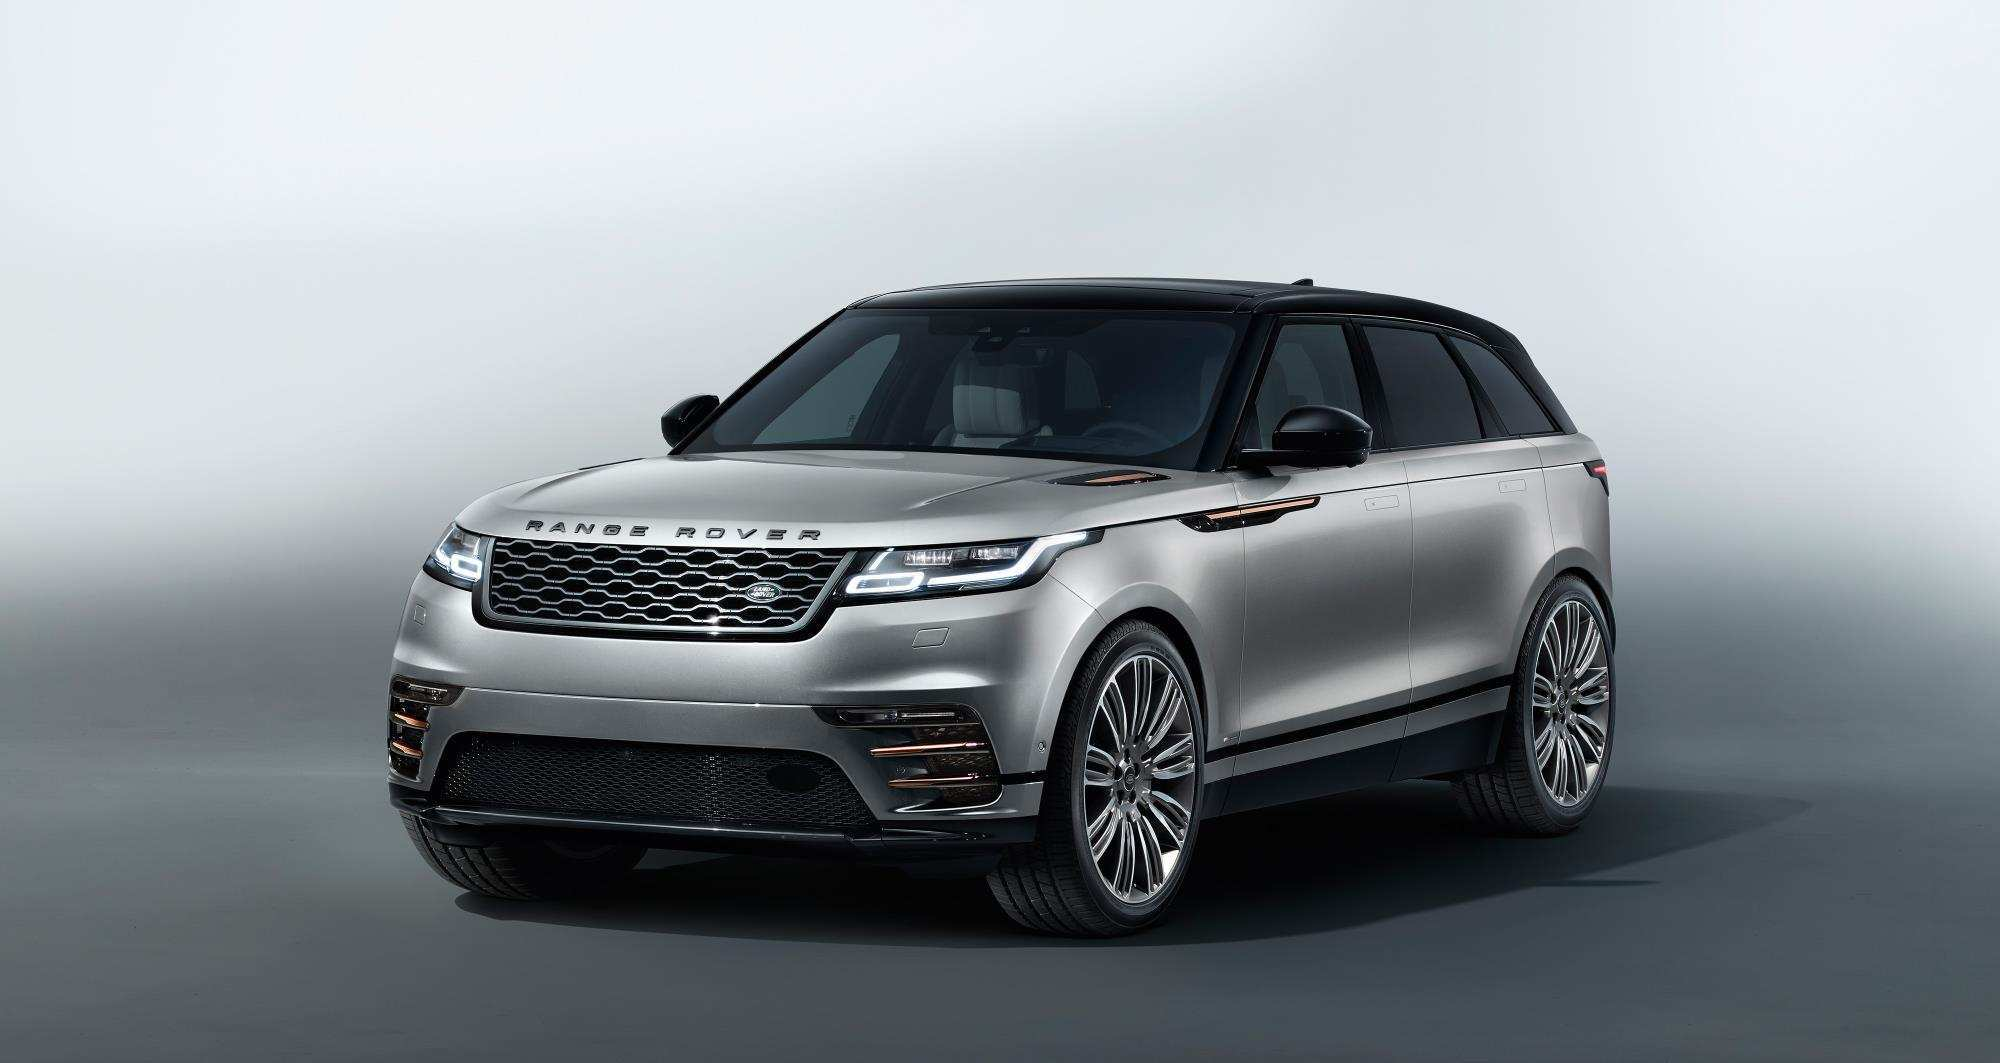 53 New Jaguar Land Rover Electric Cars 2020 Price And Release Date